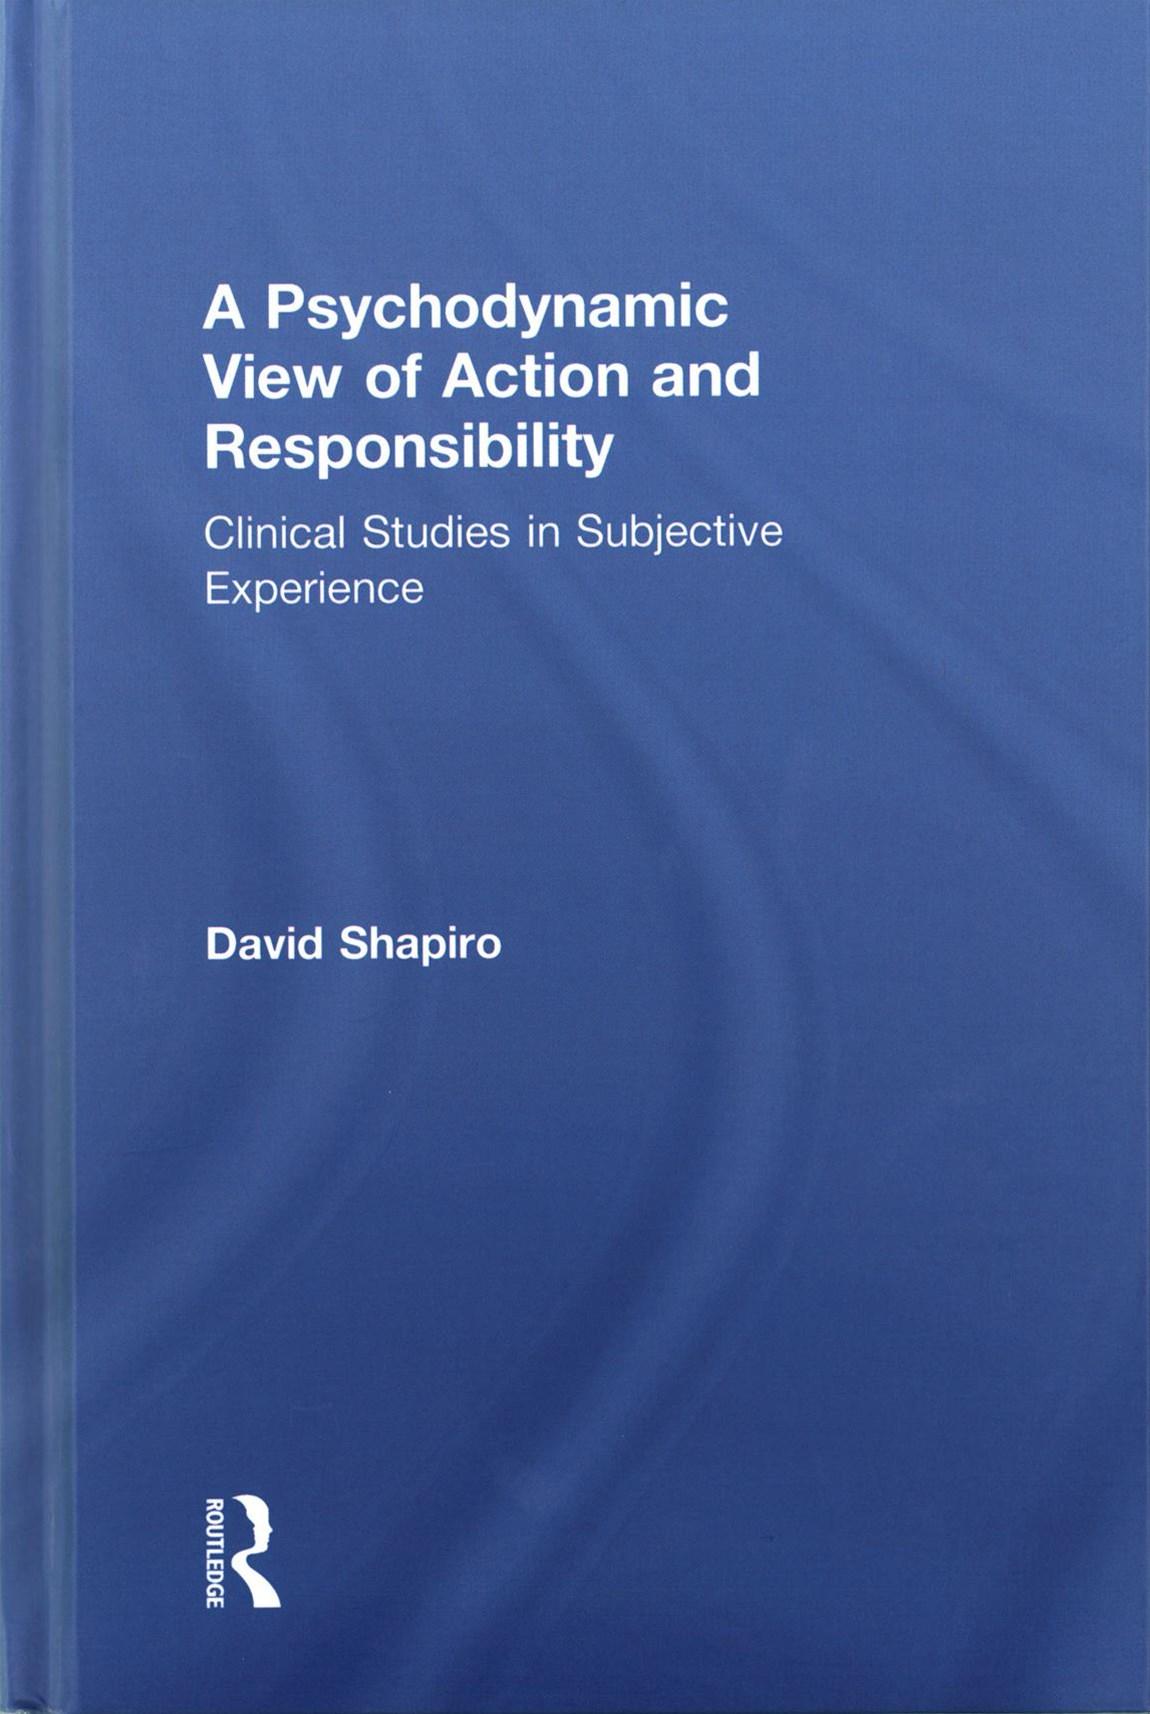 Psychodynamic View of Action and Responsibility